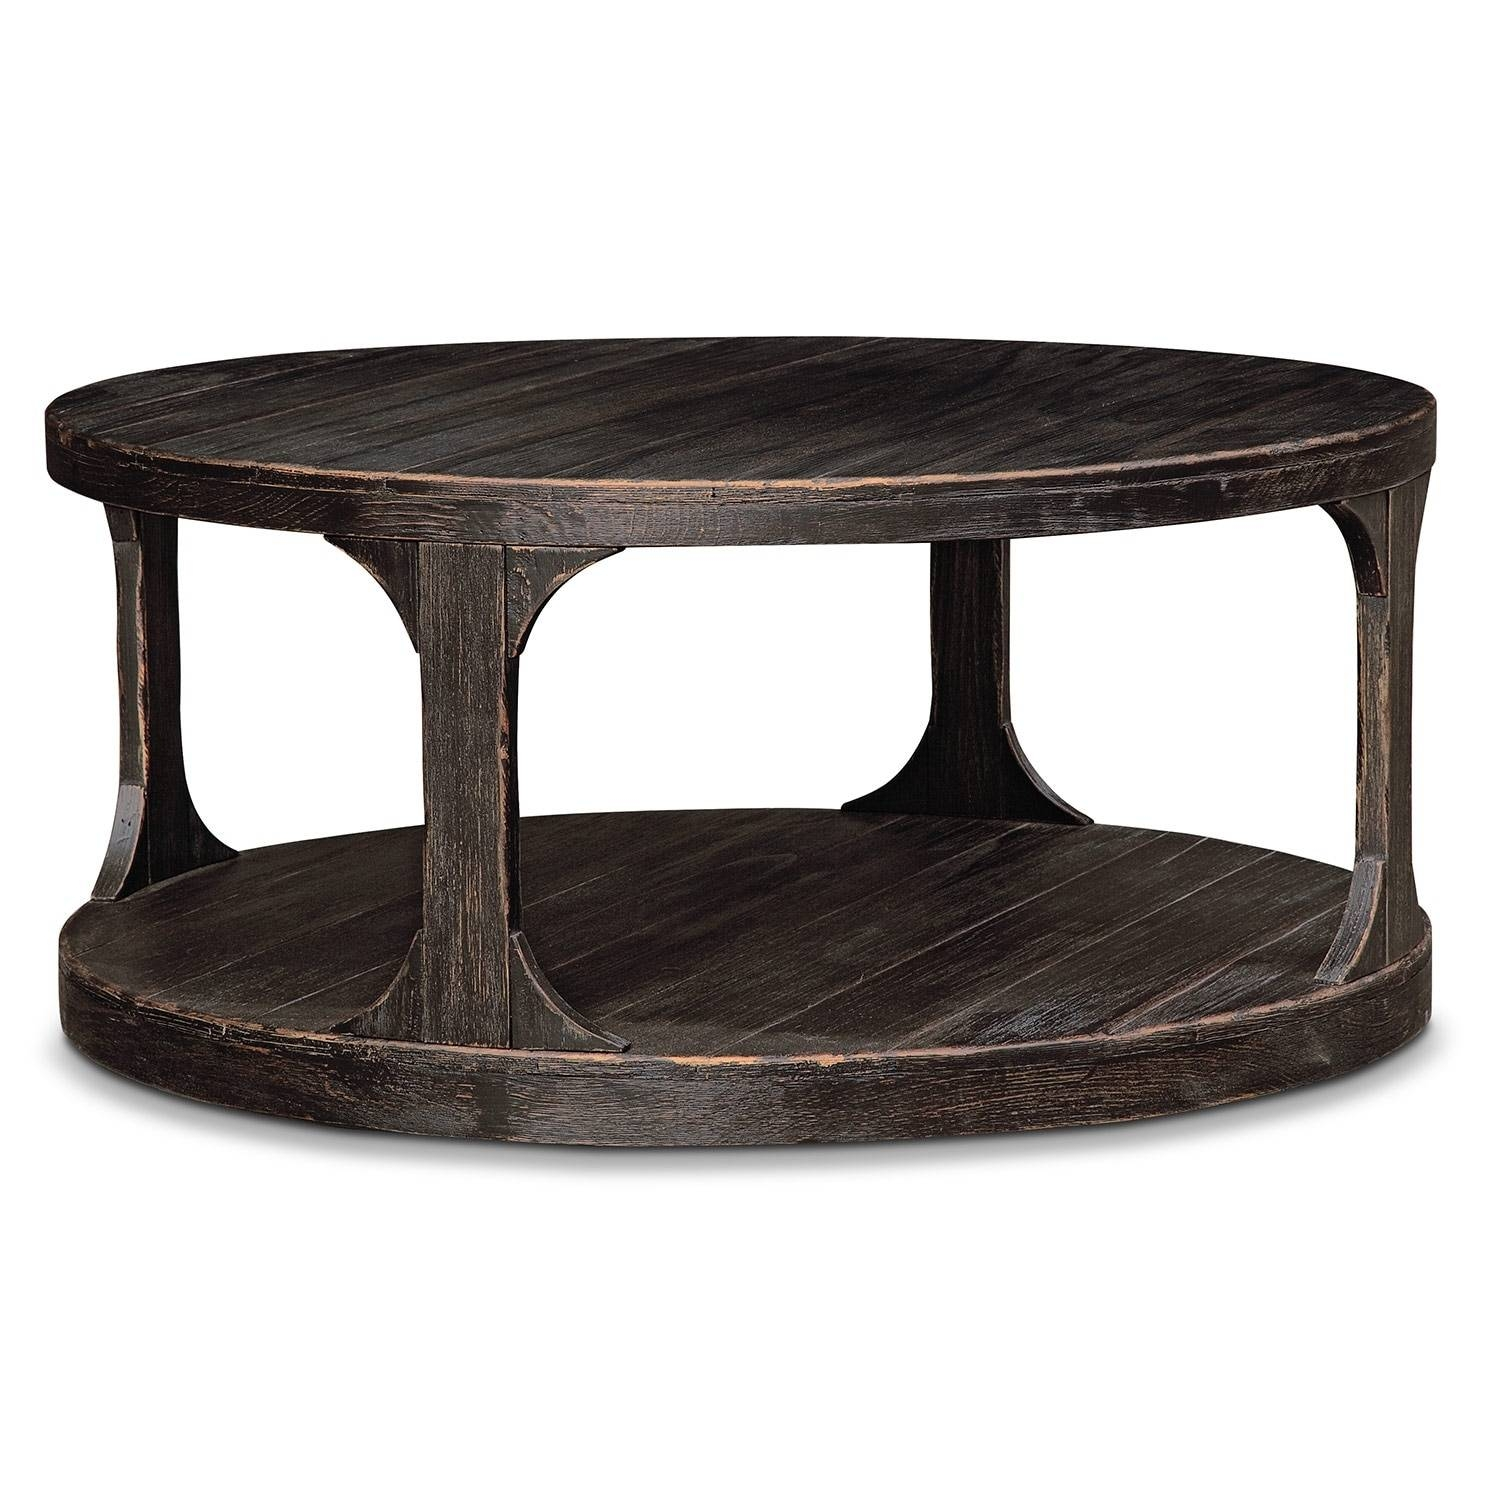 Coffee Tables | Living Room Tables | American Signature Furniture pertaining to Rounded Corner Coffee Tables (Image 13 of 30)